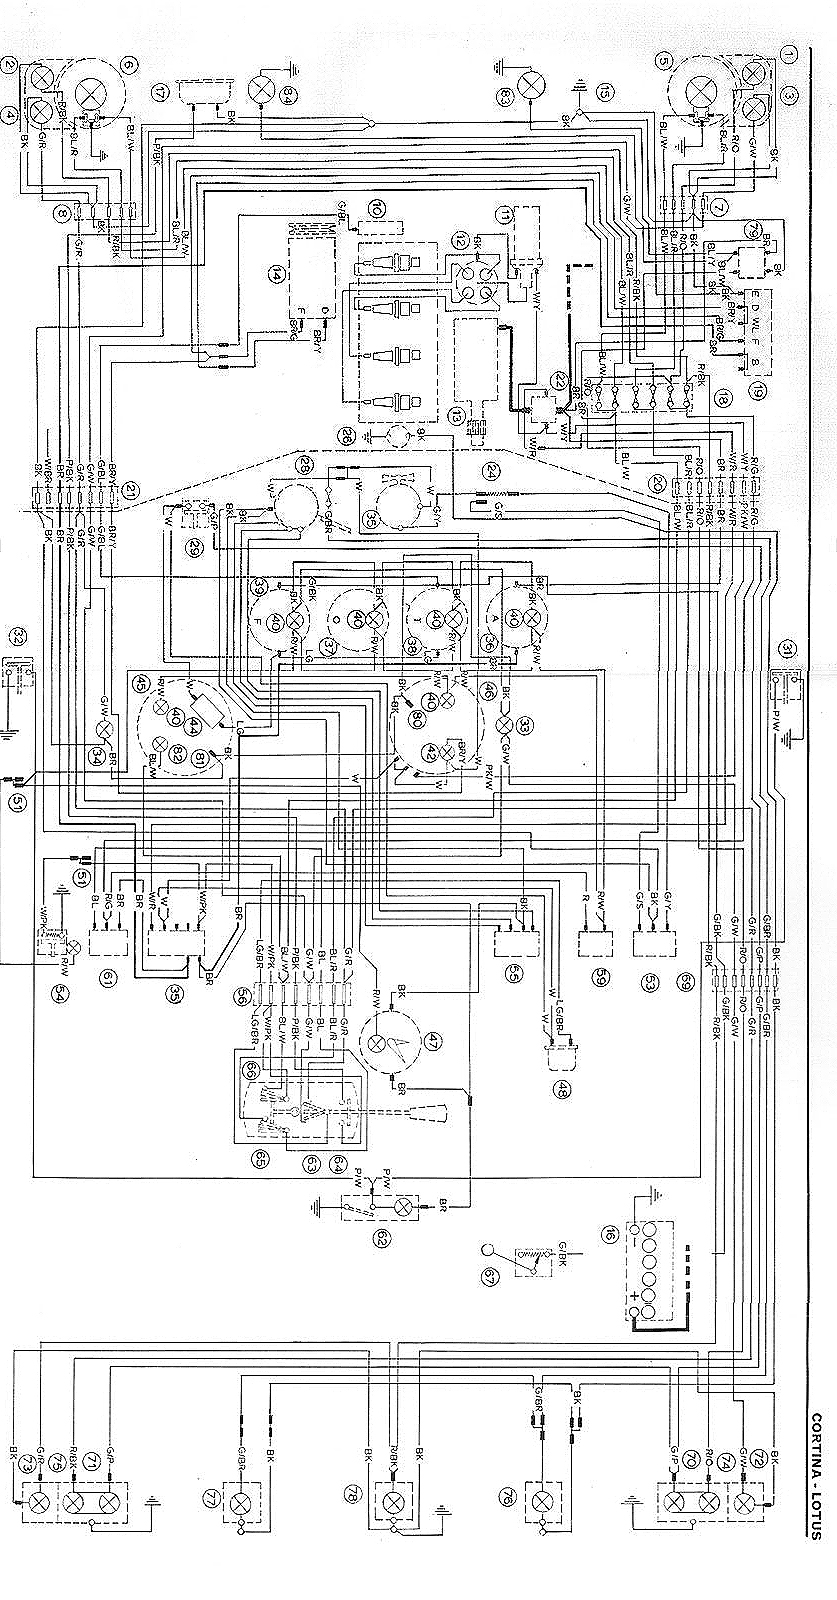 medium resolution of mk2 wiring diagram wiring diagram info wiring diagram jaguar mk2